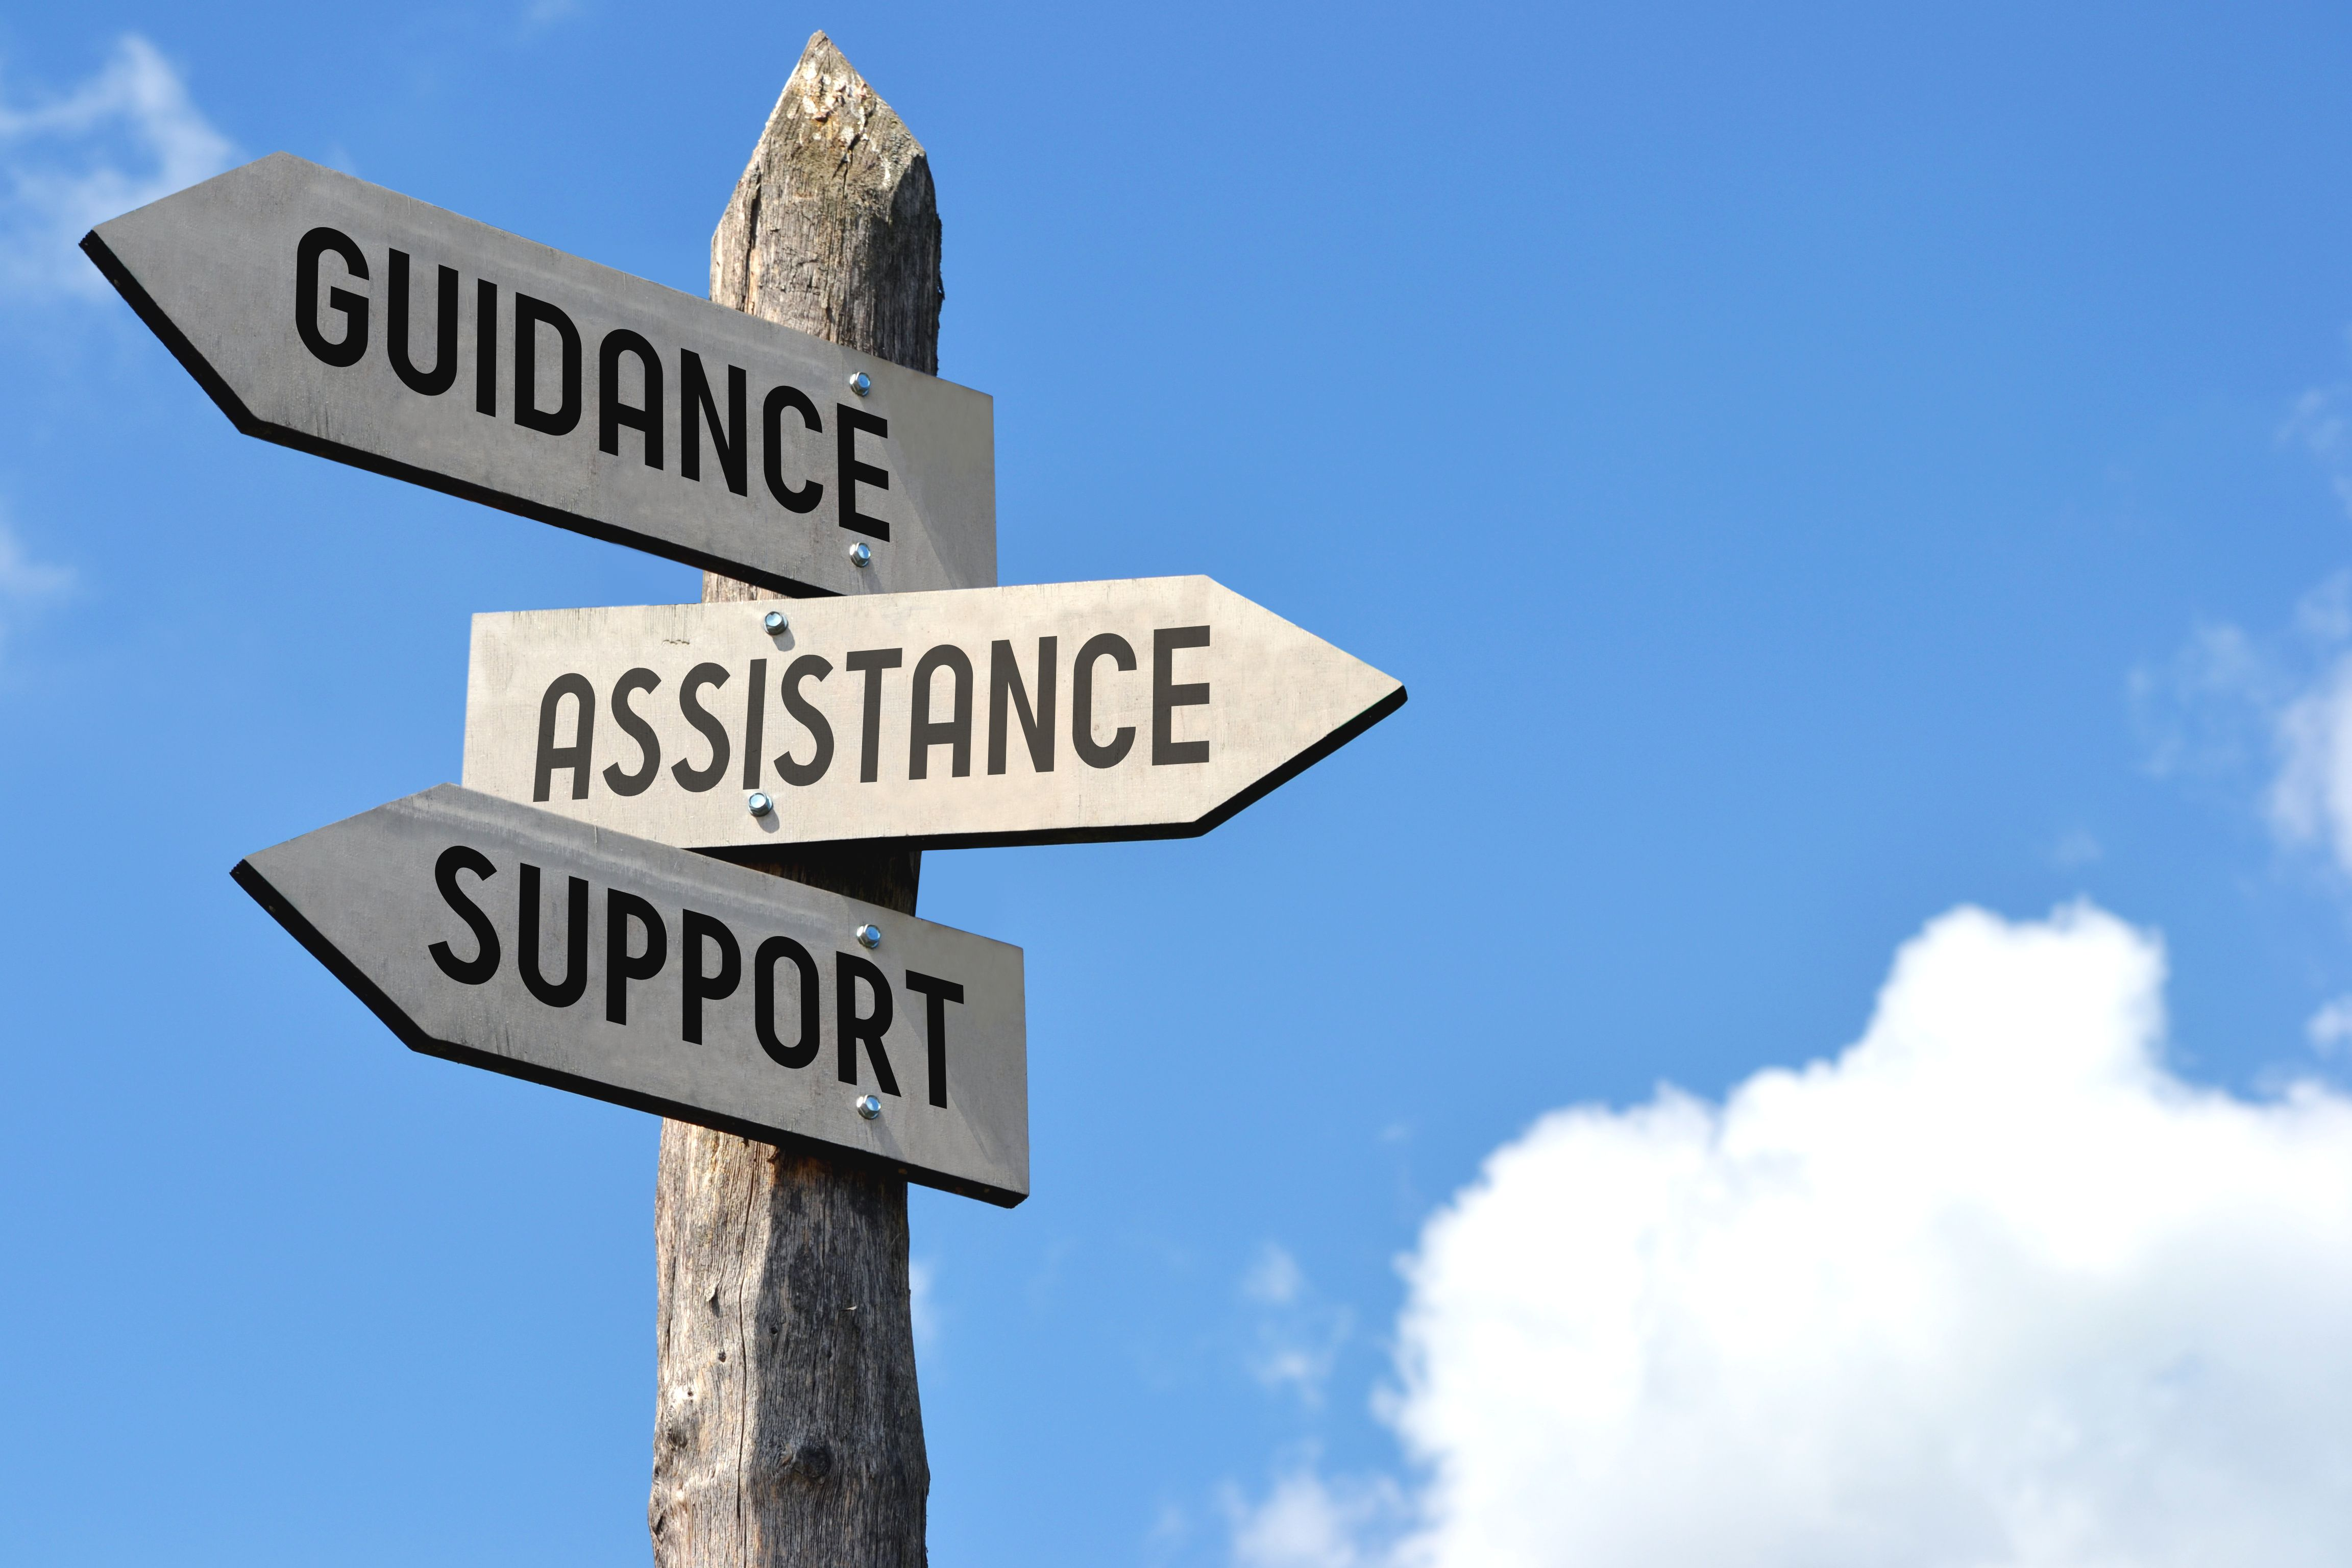 Guidance and support are key during tough times.